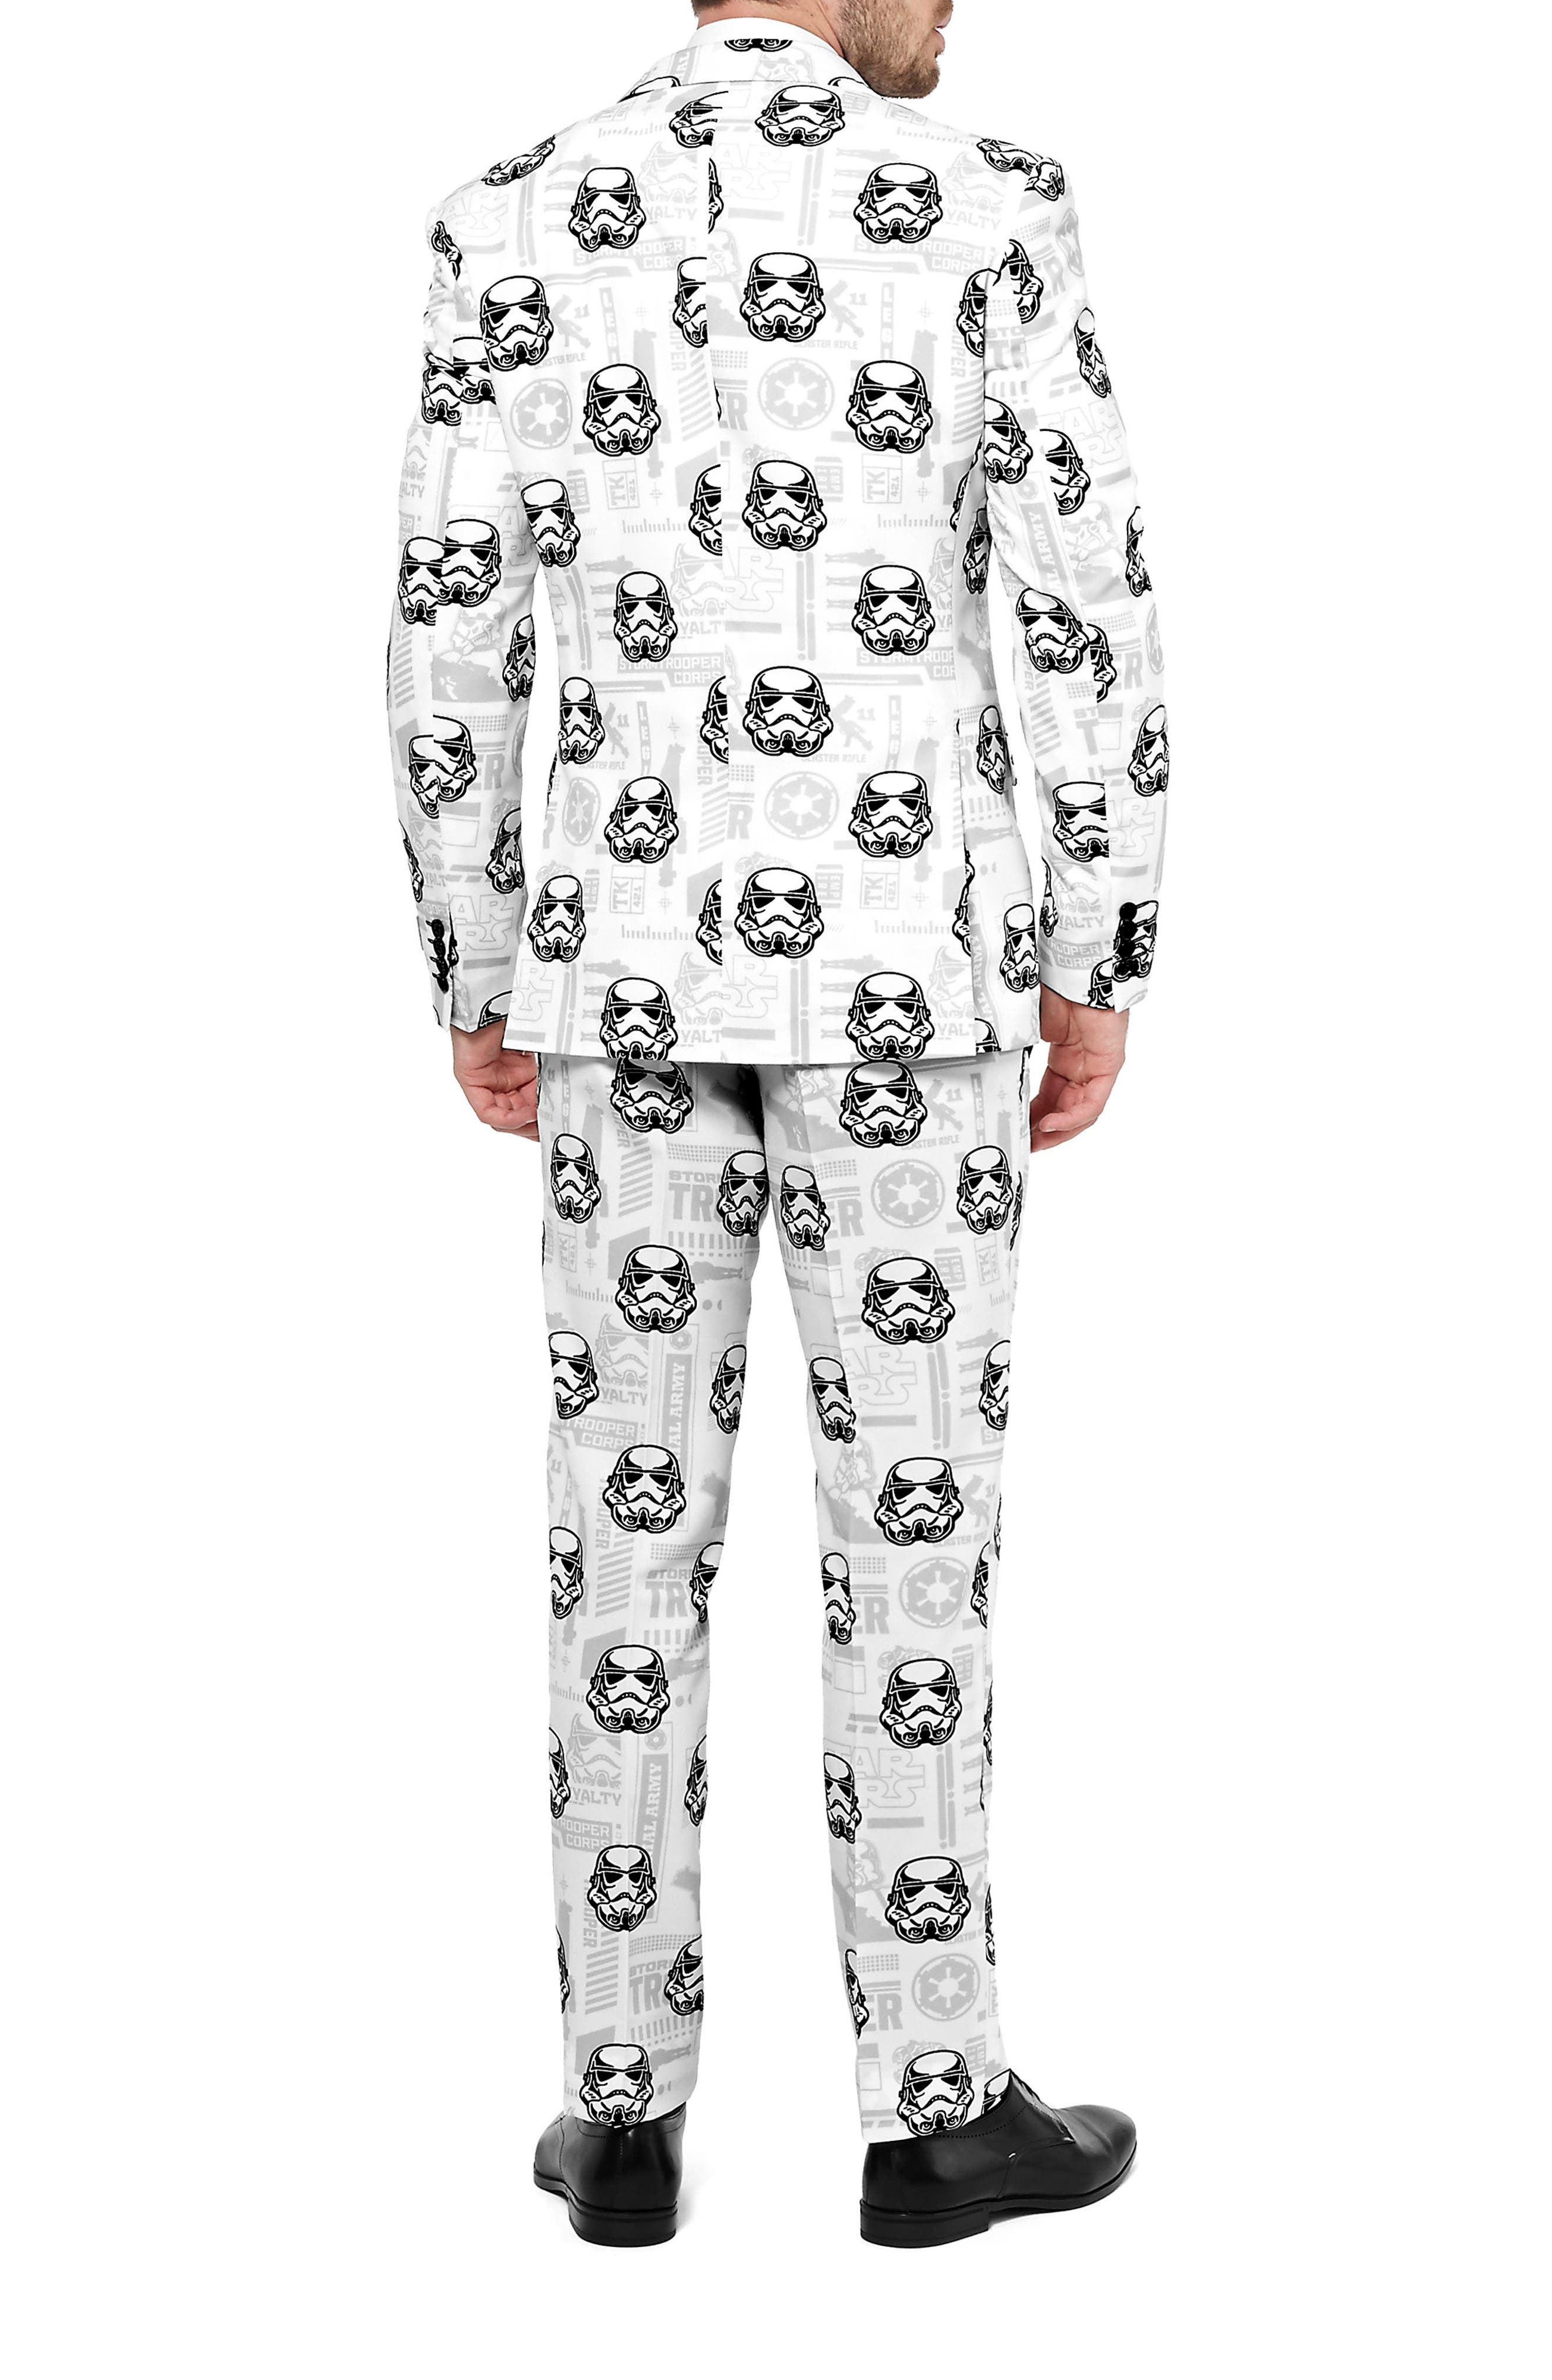 Stormtrooper Trim Fit Two-Piece Suit with Tie,                             Alternate thumbnail 3, color,                             White/ Multi